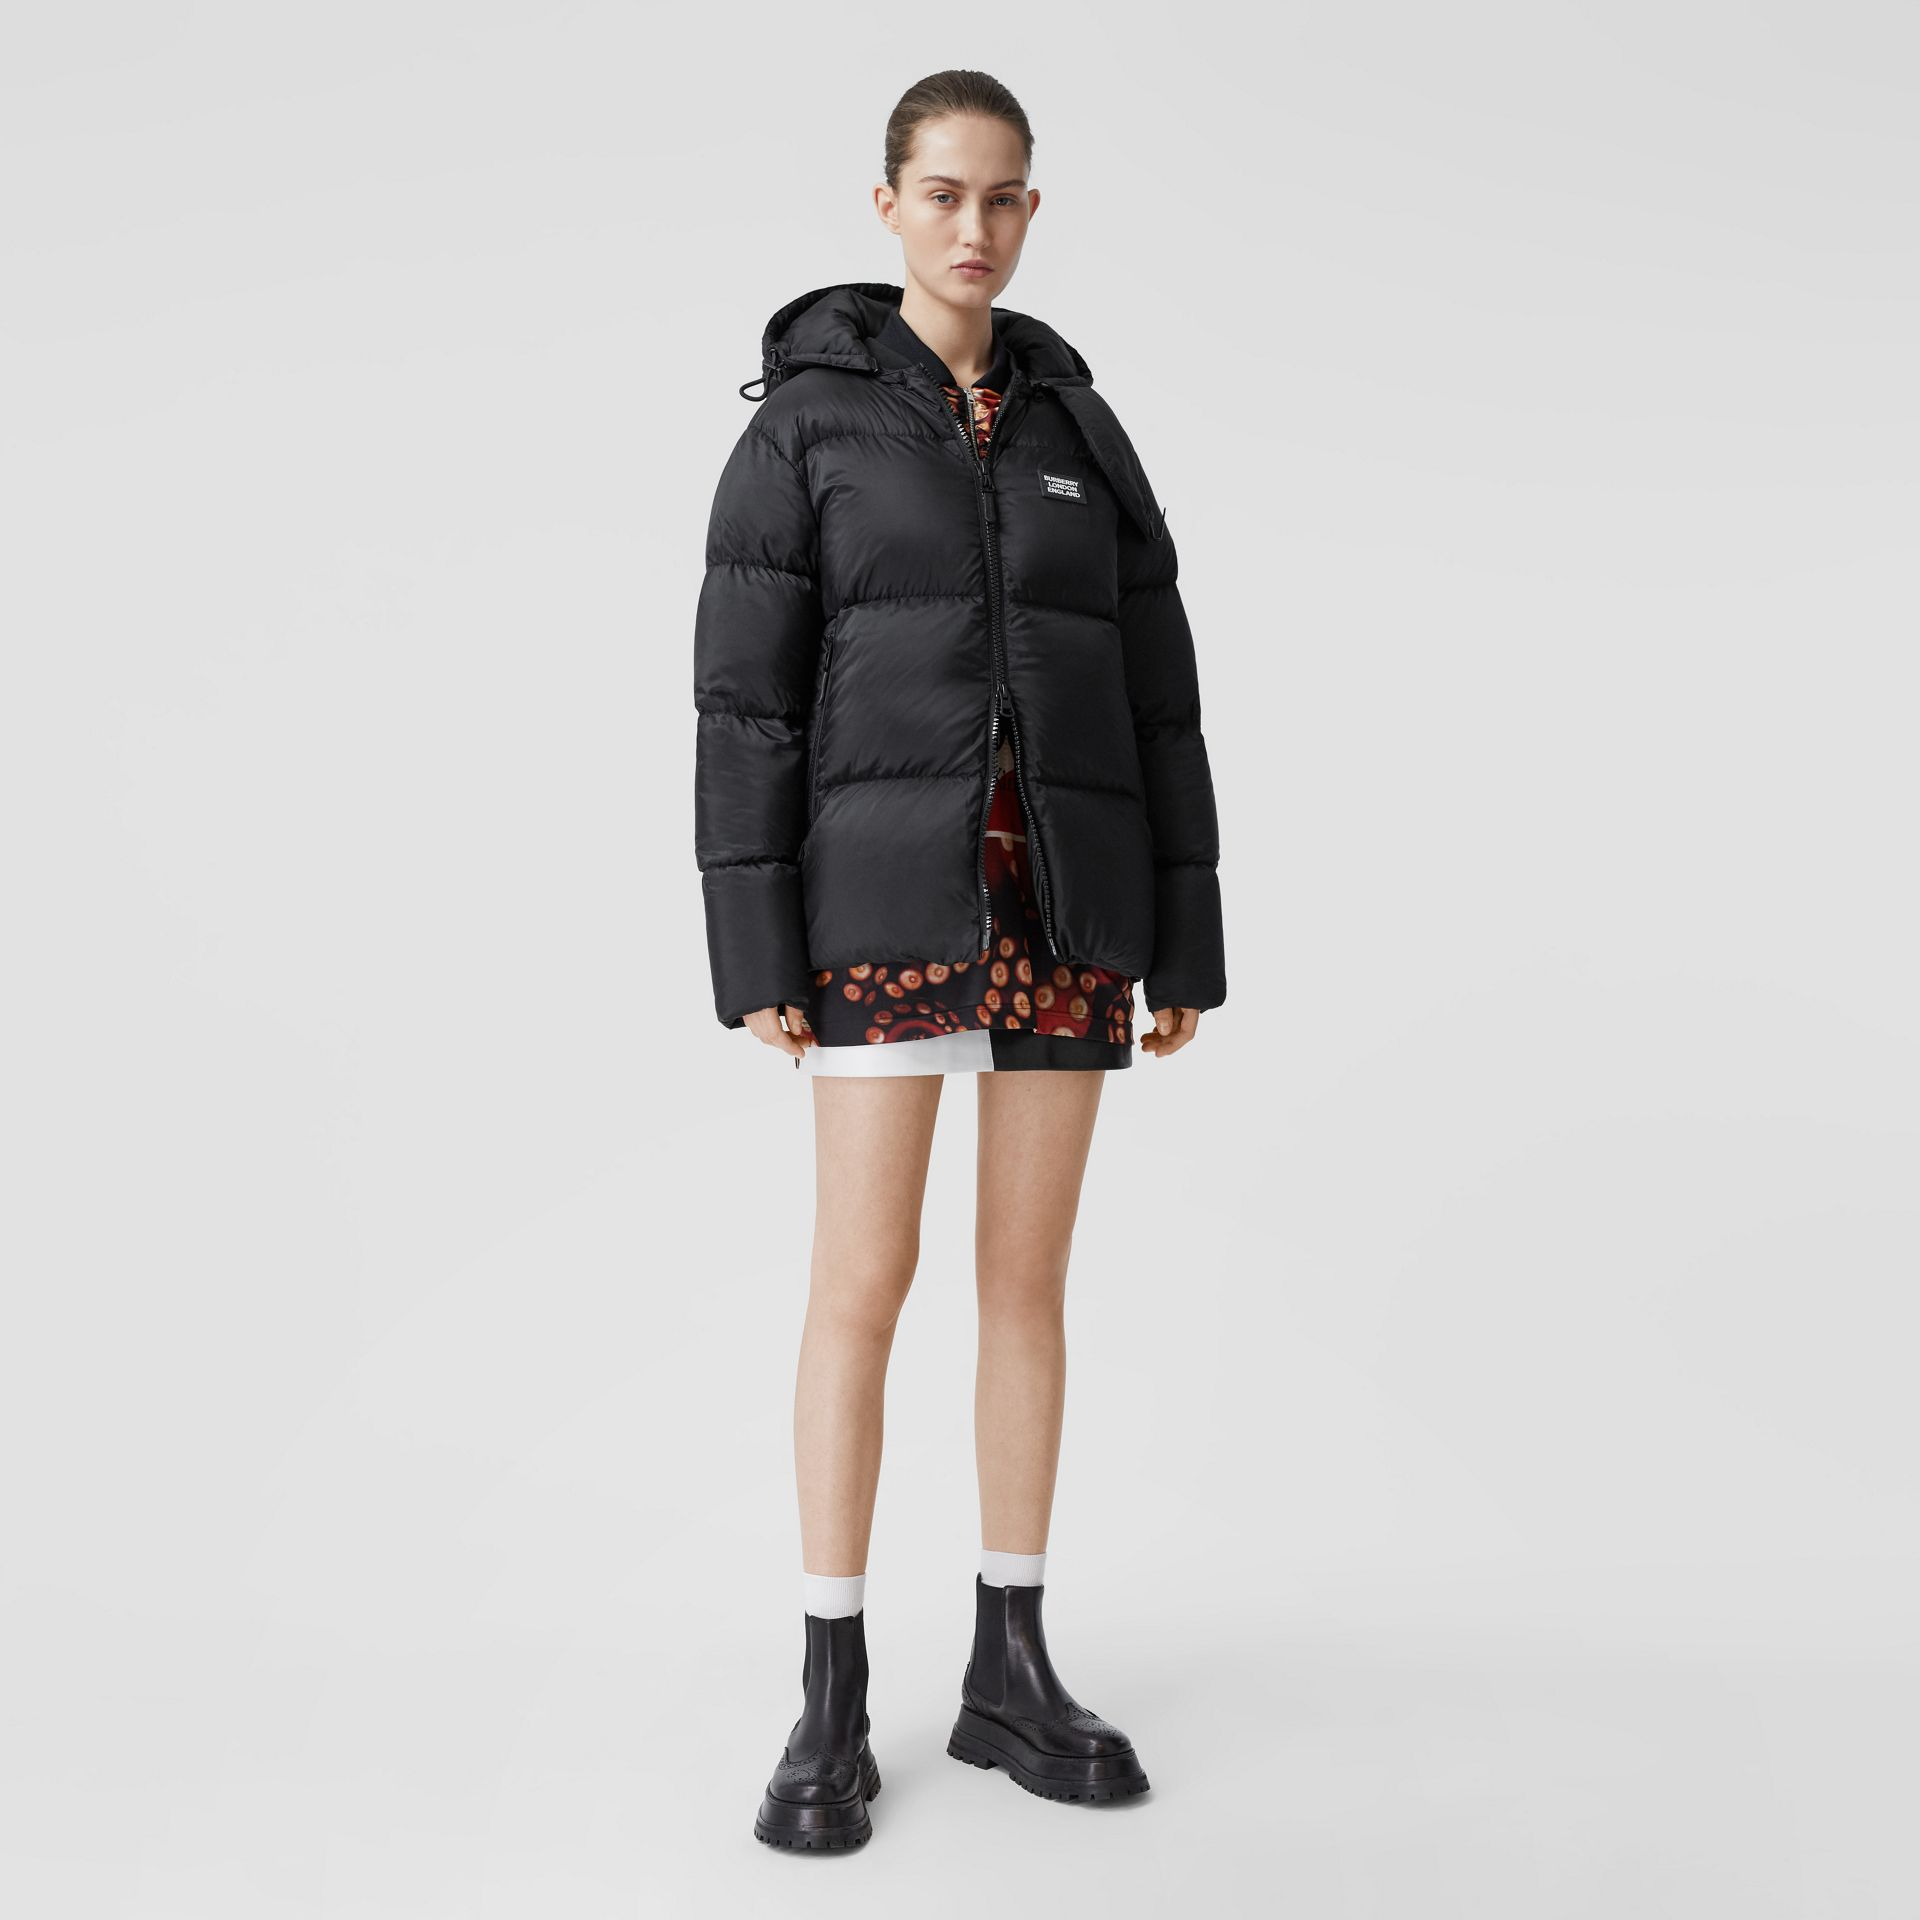 Monogram Stripe Print Puffer Jacket in Black | Burberry - gallery image 7